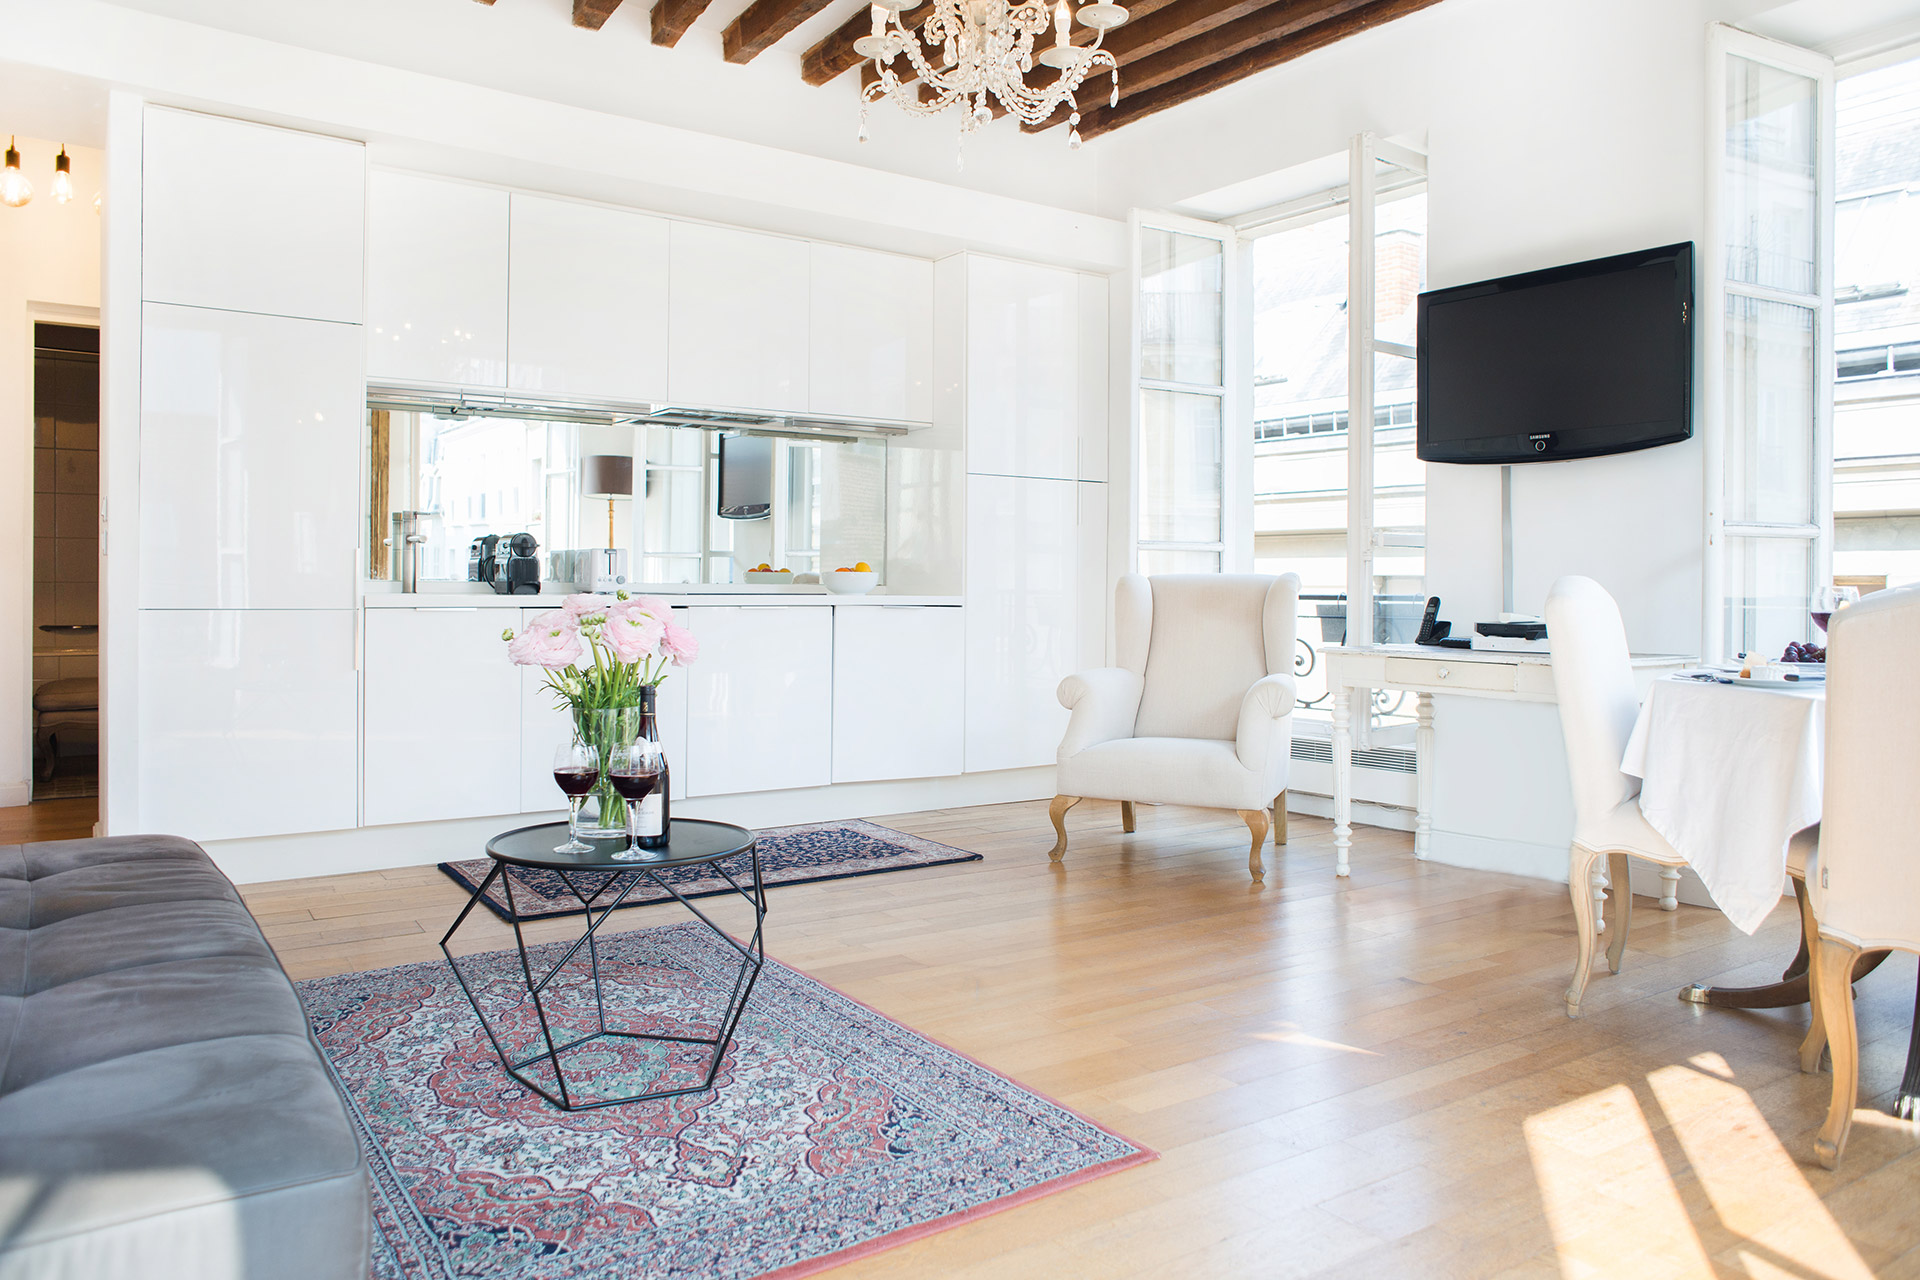 Decor in the Forez vacation rental offered by Paris Perfect